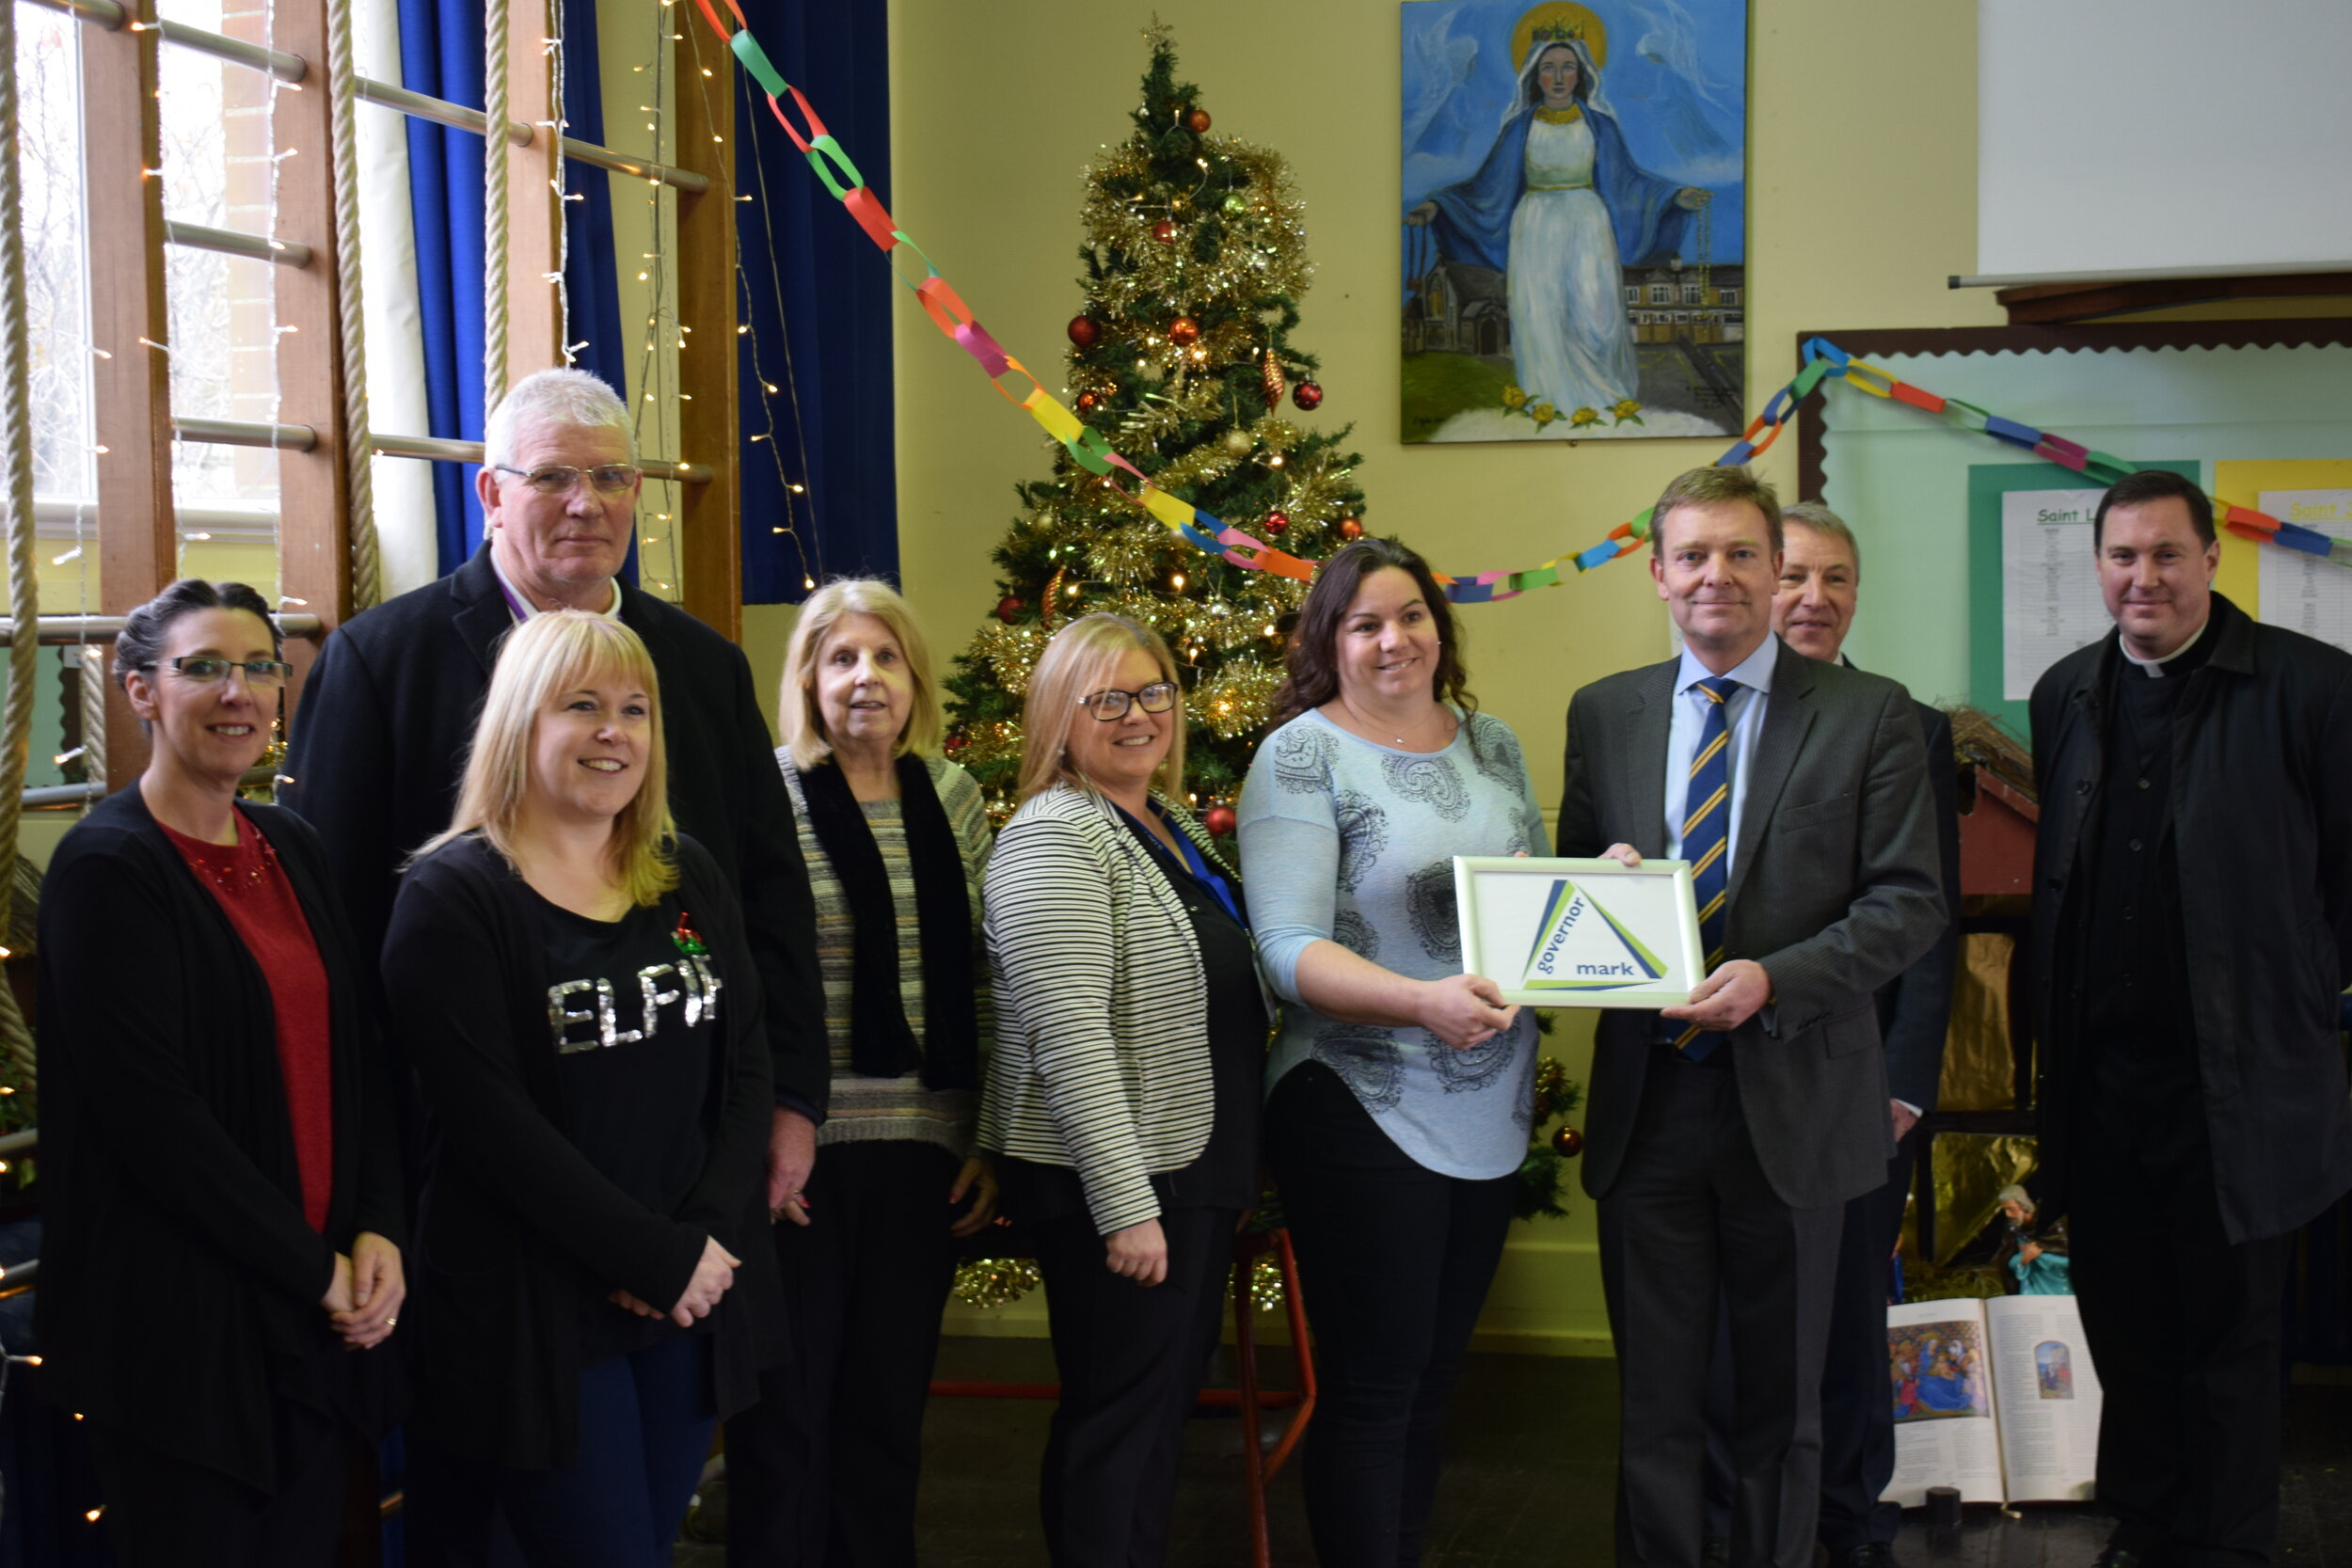 Craig presenting school governors at St Ethelbert's Catholic Primary and Nursery School in Ramsgate with their Governor Quality Mark award